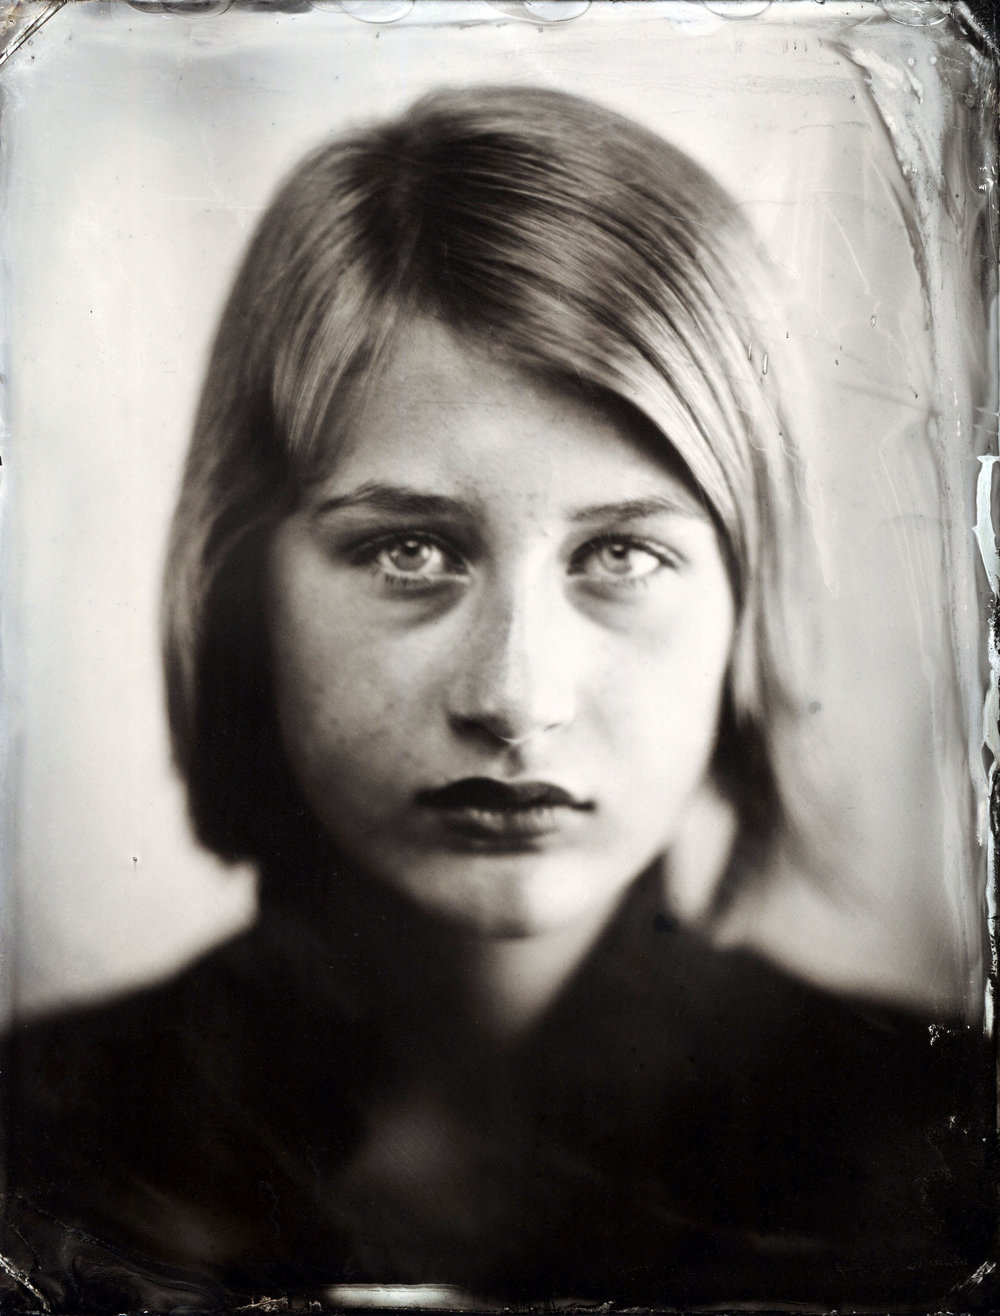 Medium--*$69, Large-- $89 for 1 person Tintype -